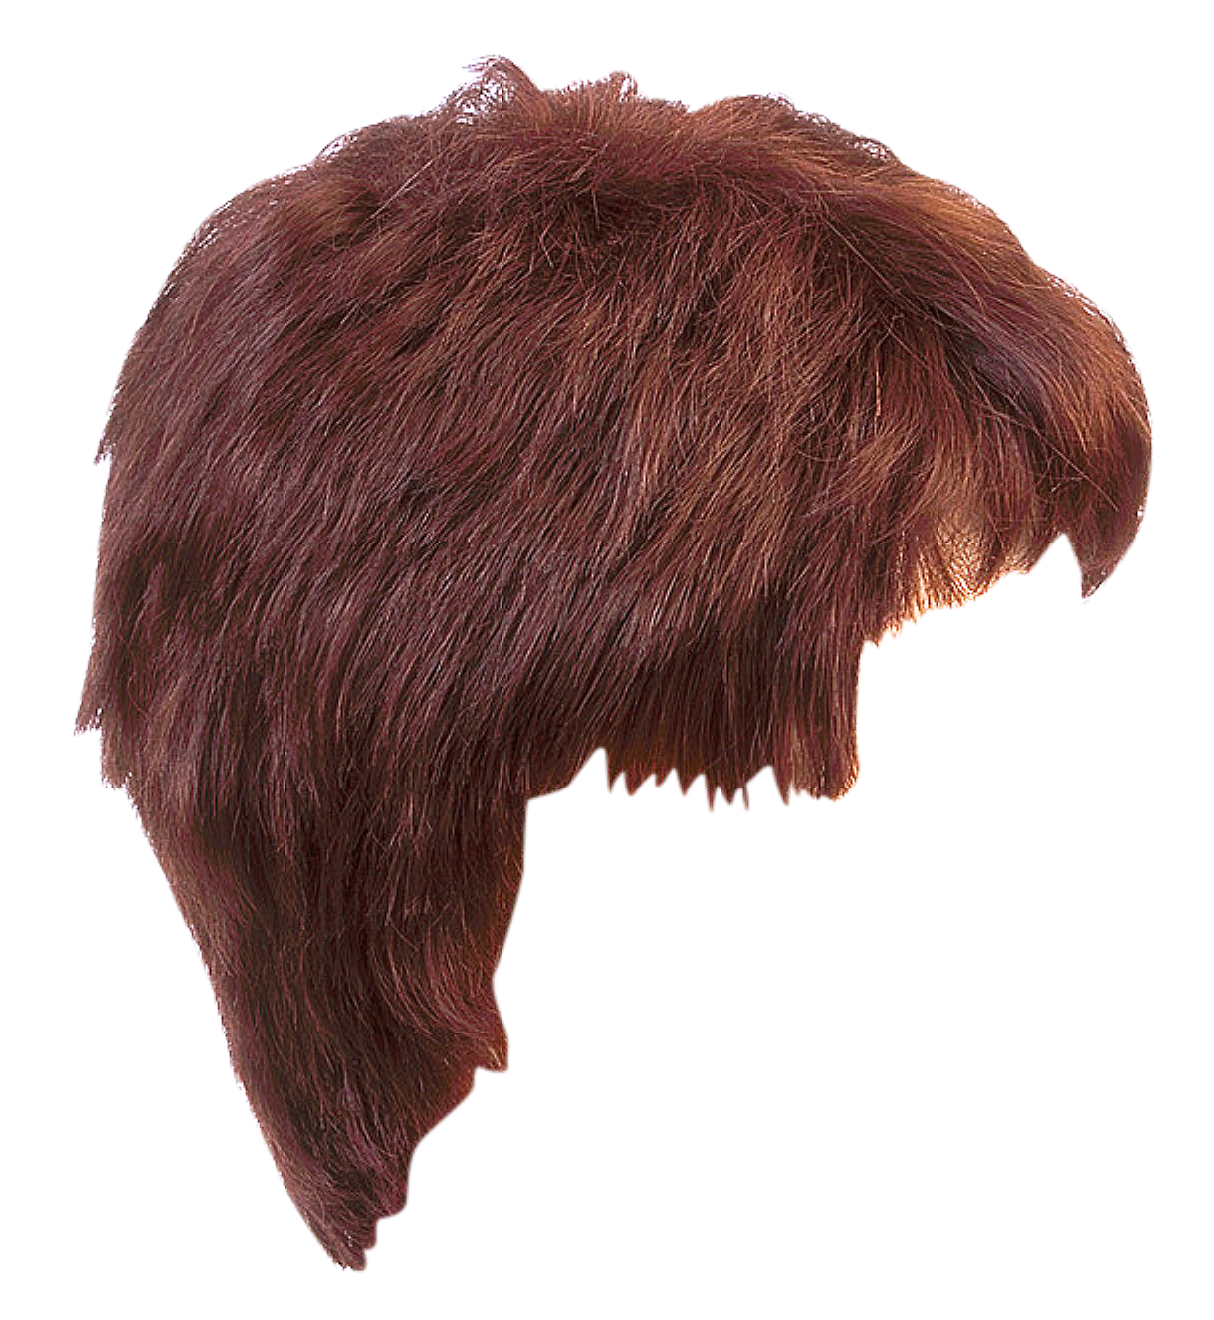 Long guy hair png. Images pngpix girl style